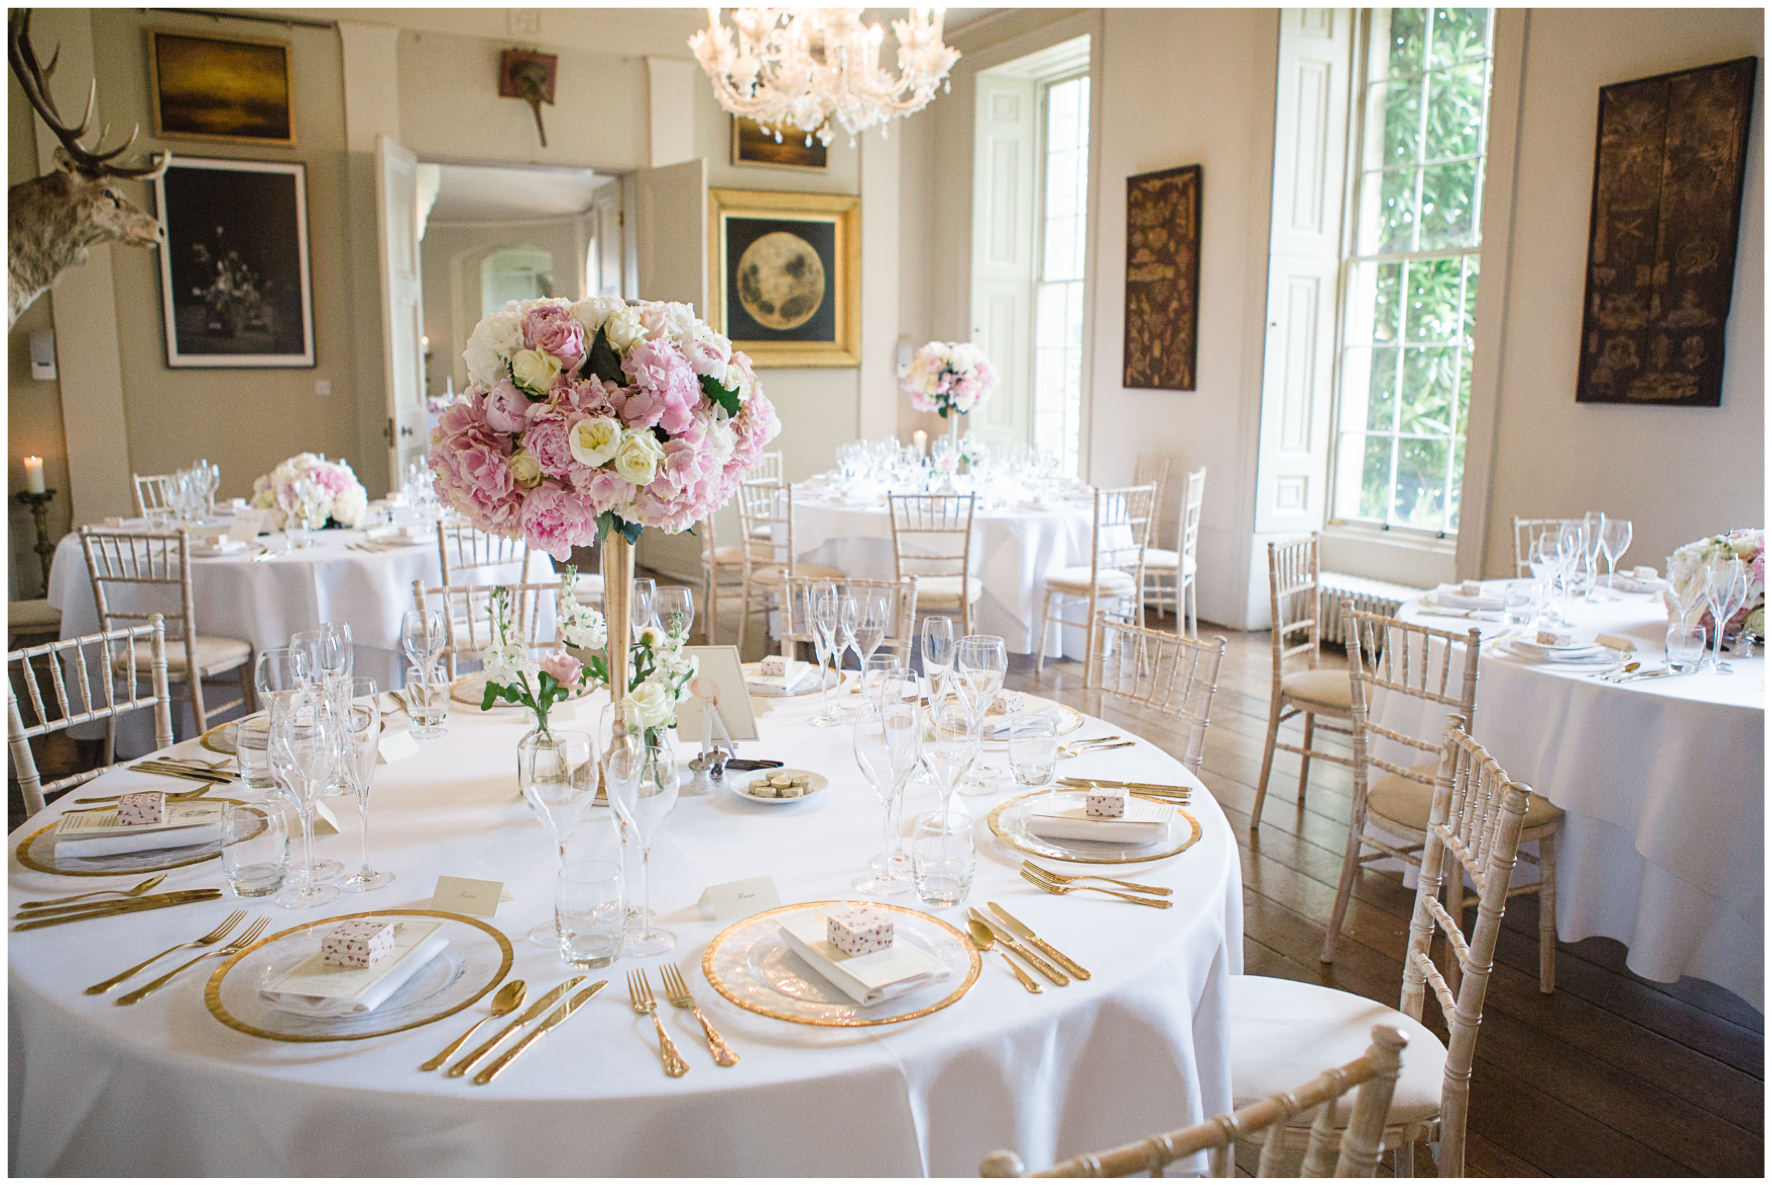 Lucy Davenport Photography, Aynhoe Park, Oxfordshire, wedding venue, Rock My Wedding, wedding breakfast, blush pink and gold